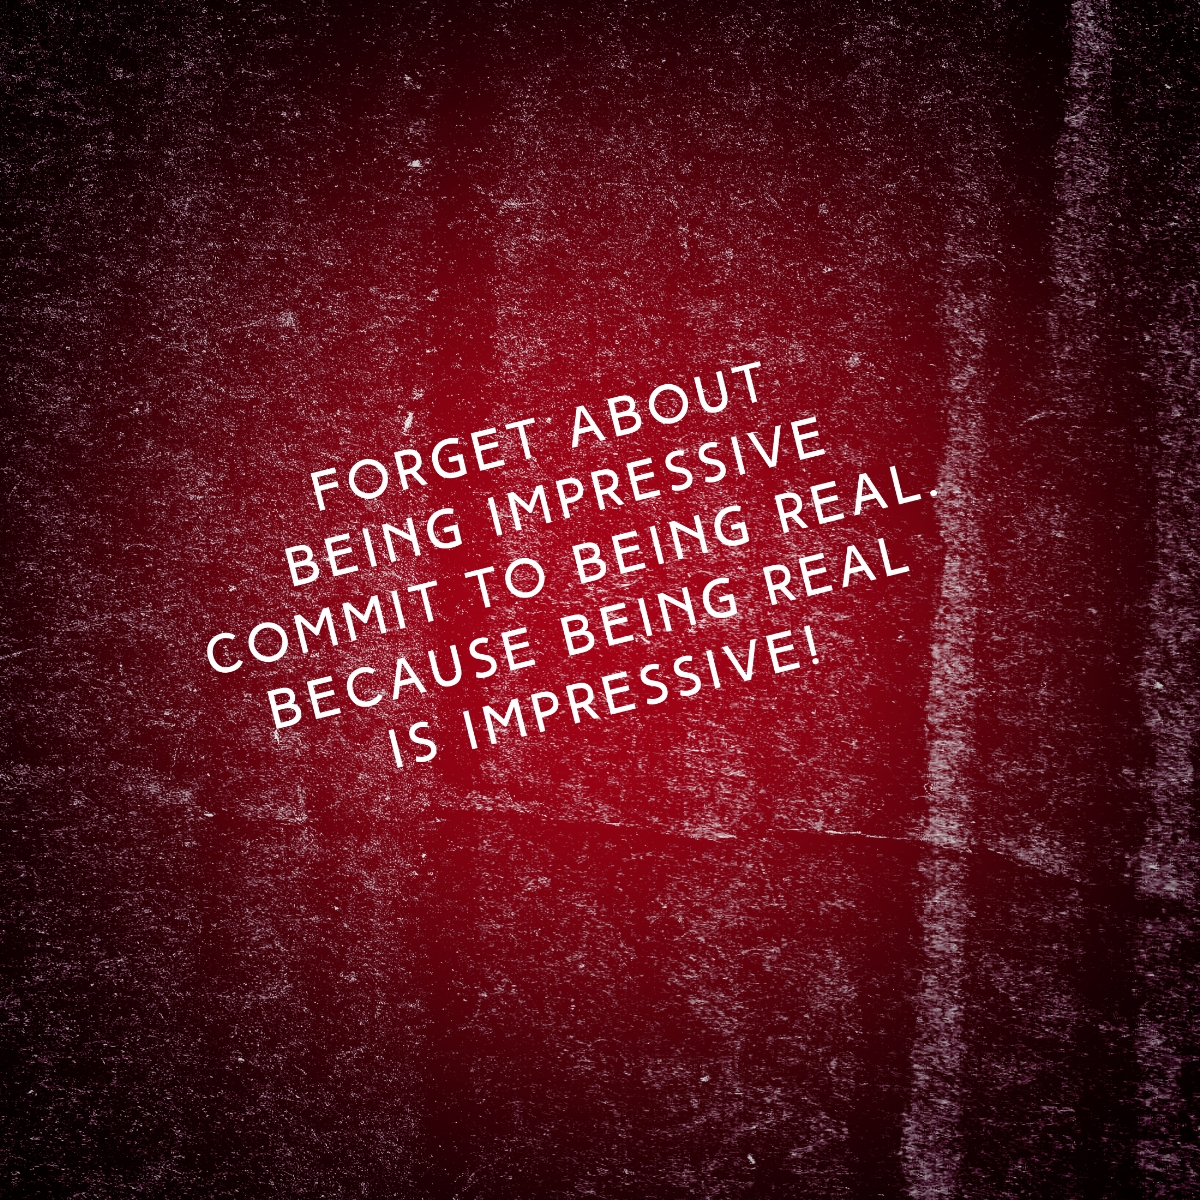 being-real